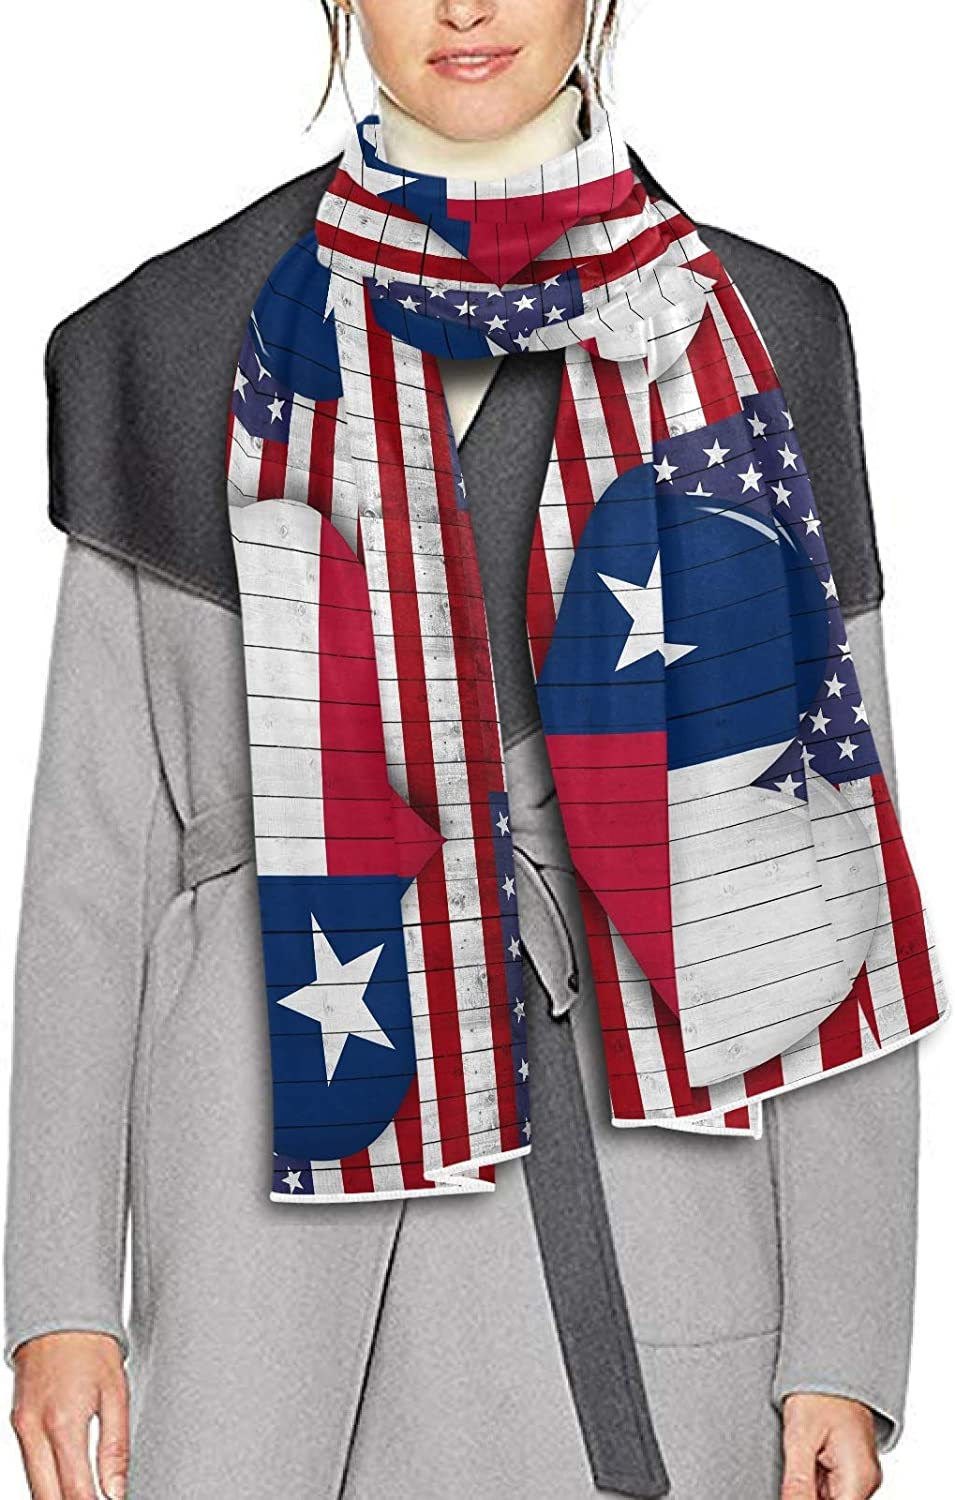 Scarf for Women and Men America Texas Flag Heart Shape Shawl Wraps Blanket Scarf Warm soft Winter Oversized Scarves Lightweight